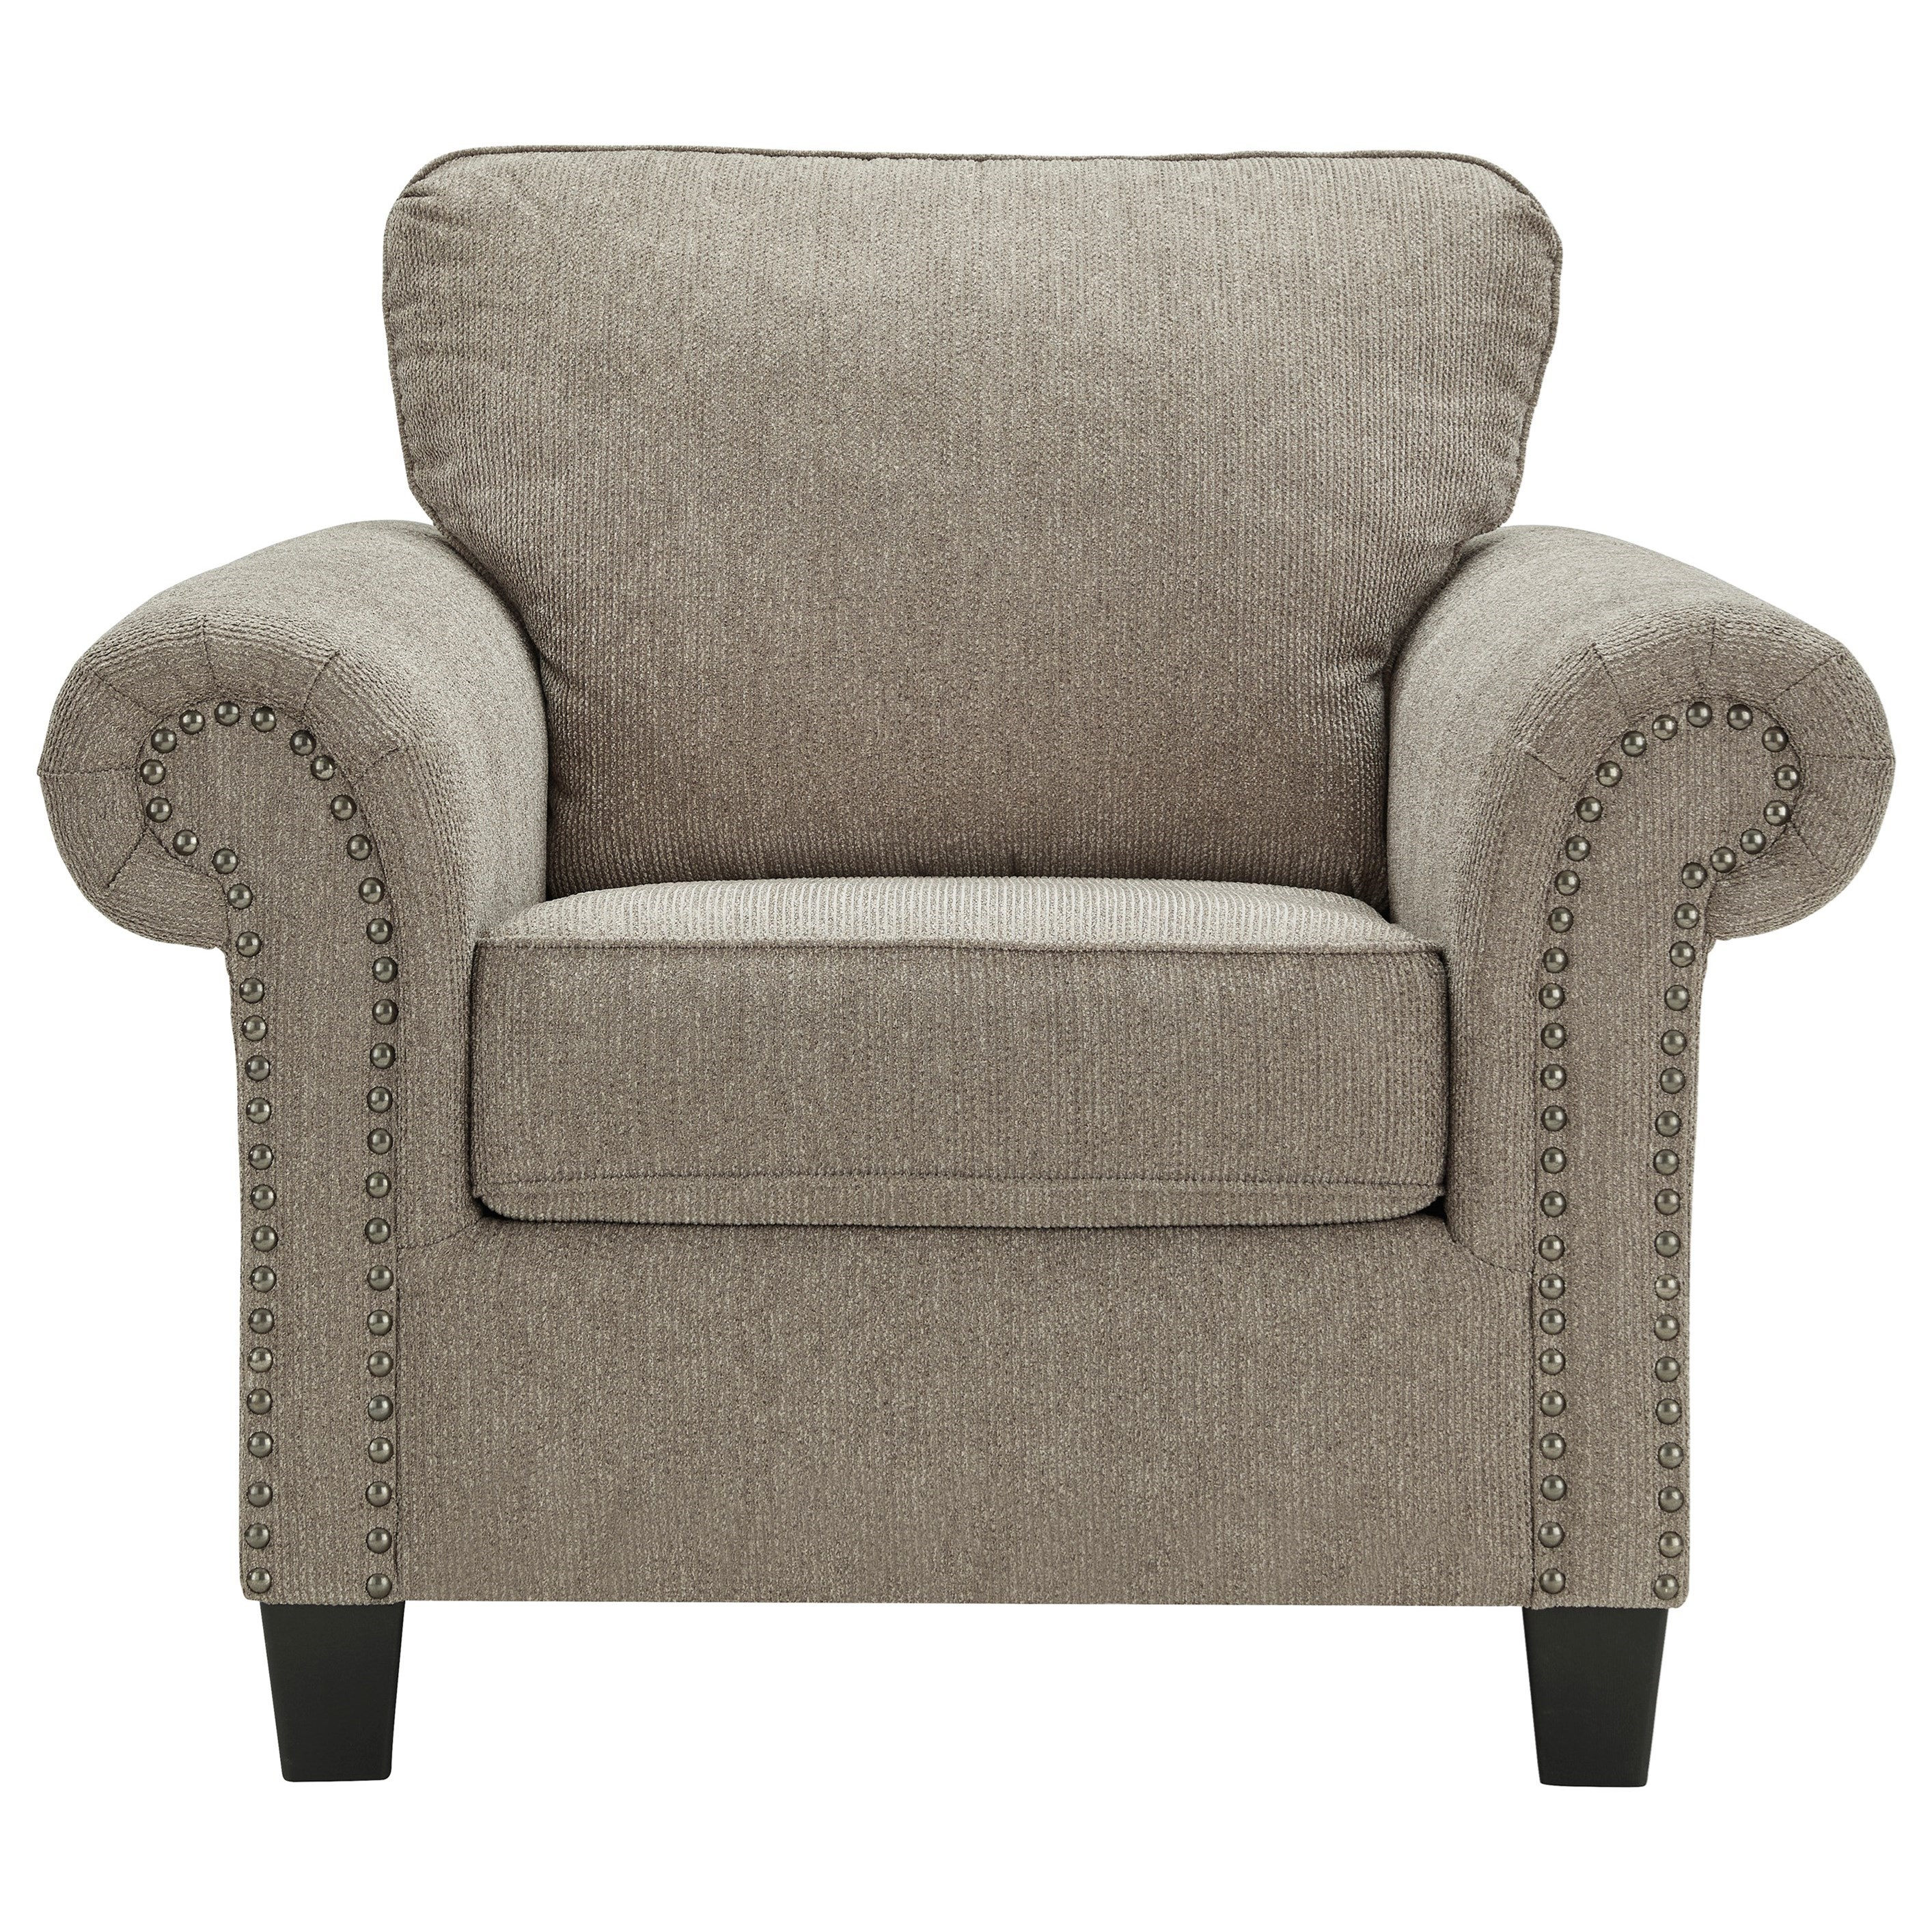 Shewsbury Chair by Benchcraft at Zak's Home Outlet